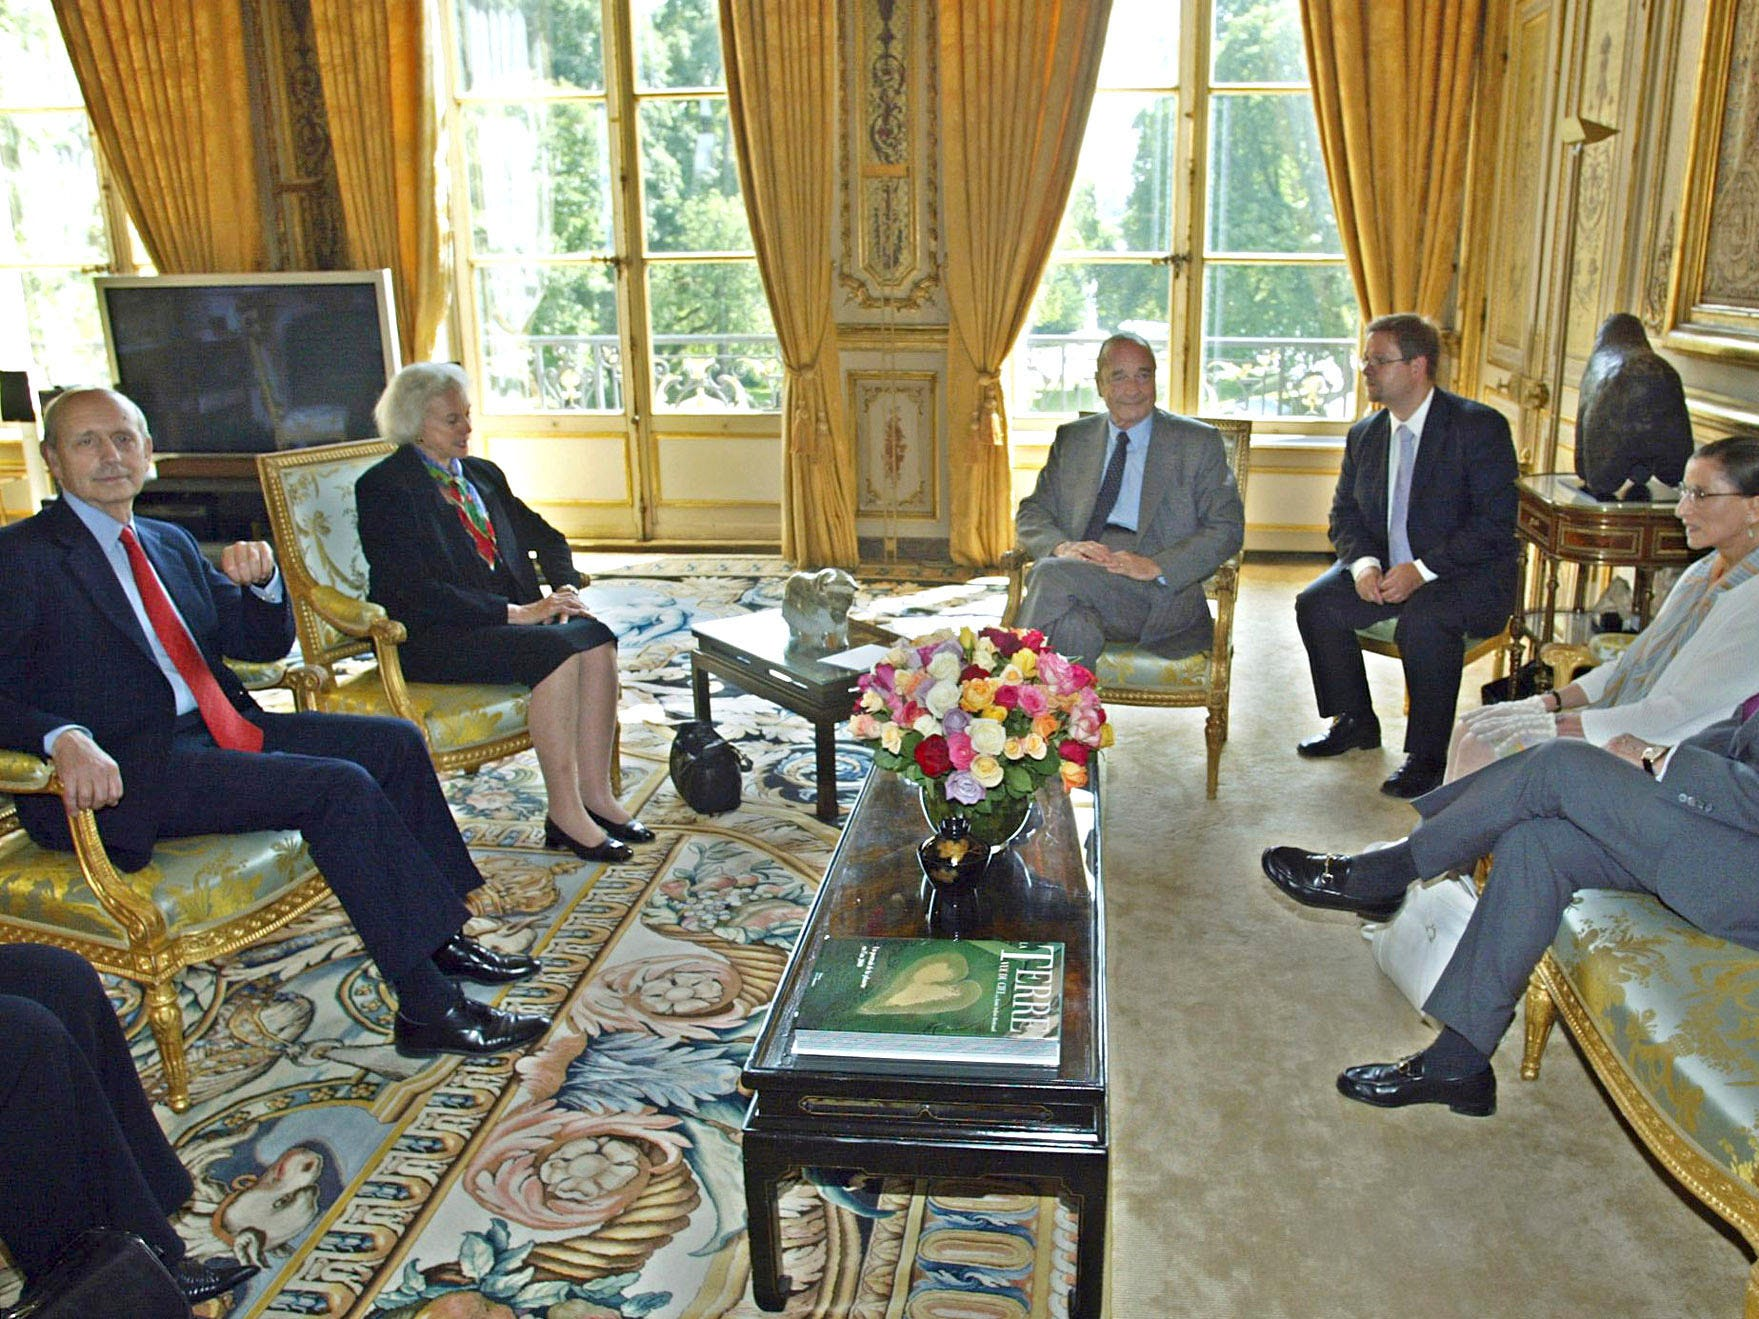 French President Jacques Chirac, center,  listens to U.S Supreme Court judges, from left, Stephen Breyer, Sandra Day O'Connor, Ruth Bader-Ginsburg and U.S Ambassador to France Howard H. Leach, right in Paris, Tuesday July 8, 2003. Third from the right is an unidentified interpreter.